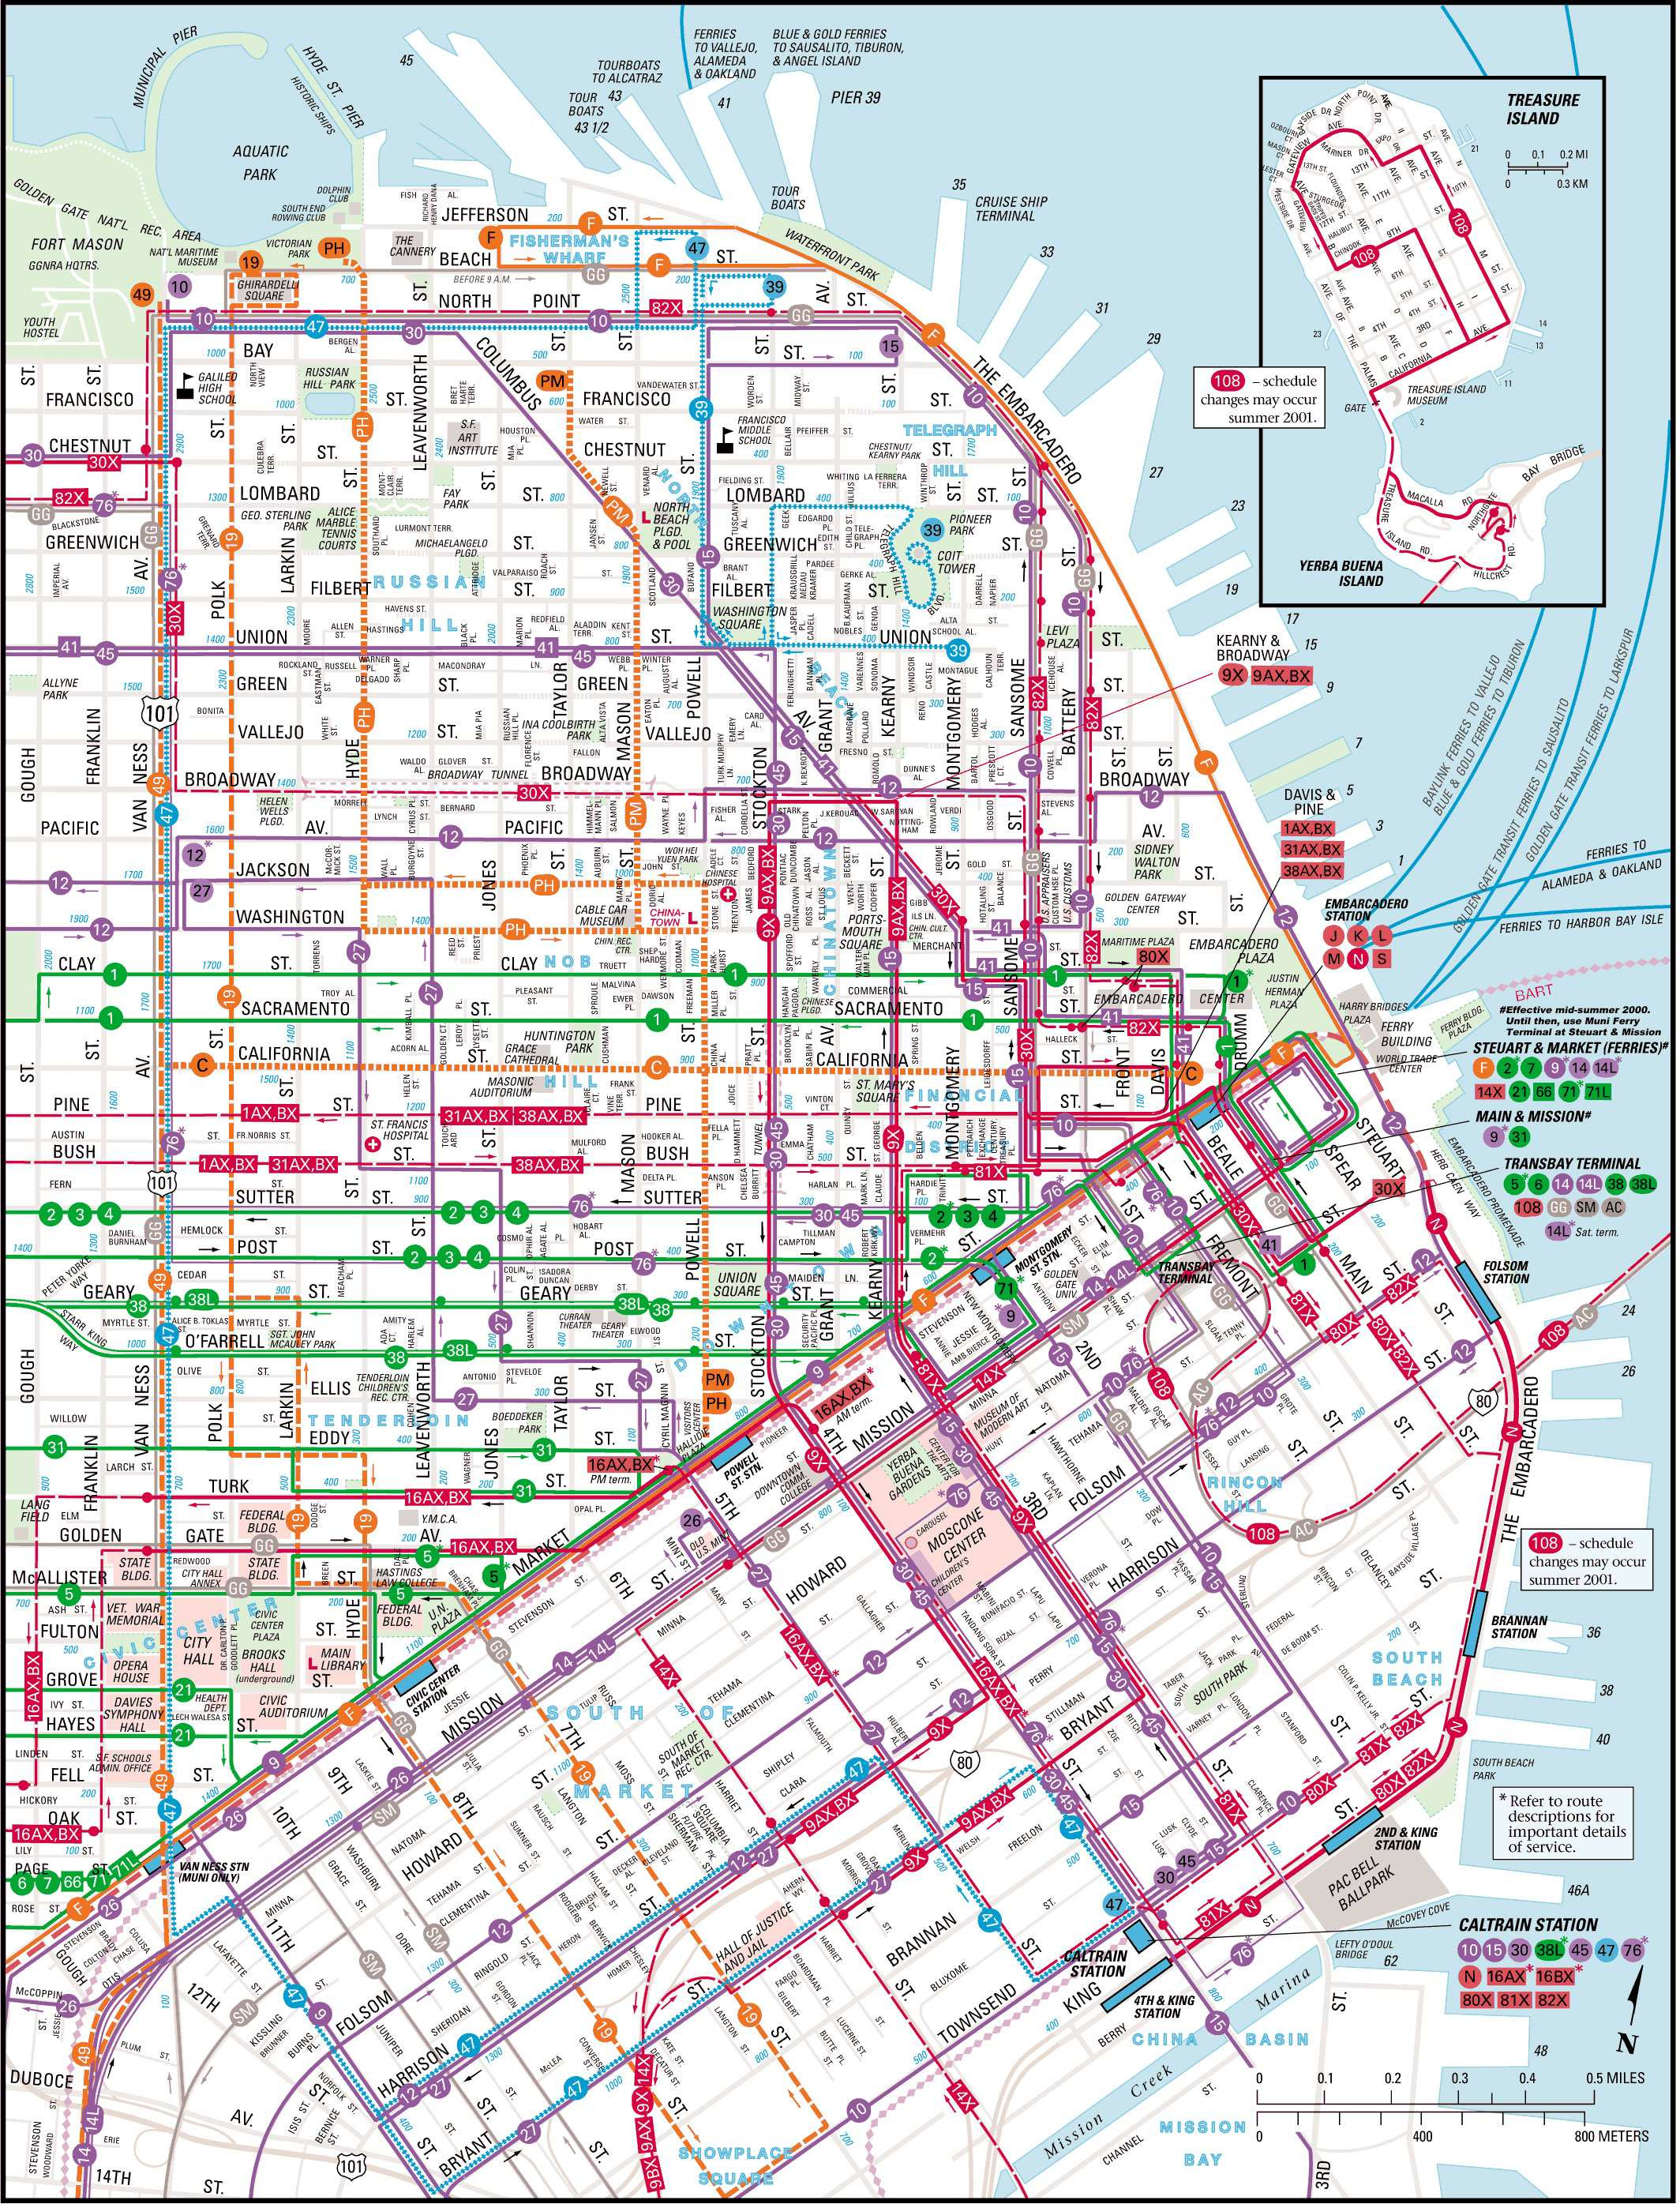 Large San Francisco Maps For Free Download And Print | High - San Francisco City Map Printable